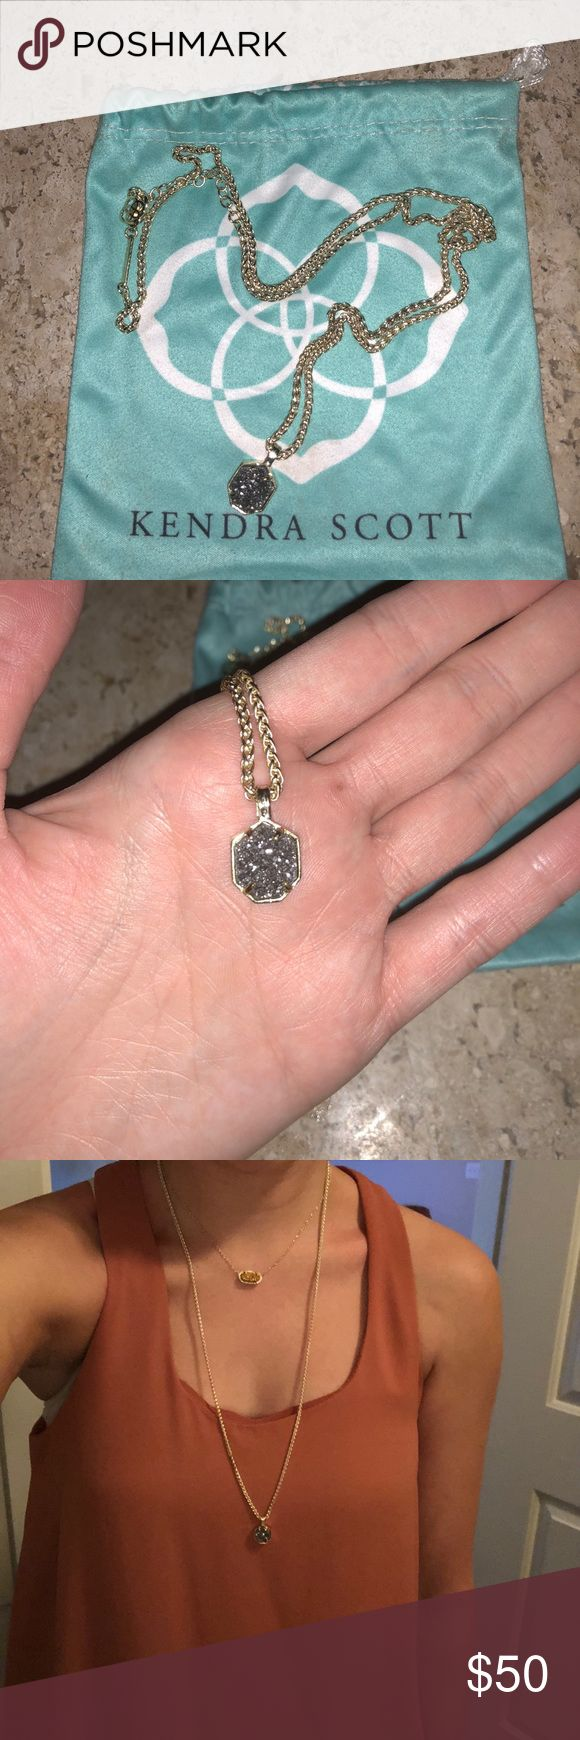 """Kendra Scott Oliver Gold Plated Pendant Necklace Kendra Scott Oliver Gold Plated Druzy Long Pendant Necklace   Great piece for layering! Only worn a handful of times. Like new! Dusted bag included  26"""" lengthwith 2"""" extender, Pendant is 3/8""""Wx 7/8"""" L Kendra Scott Jewelry Necklaces"""